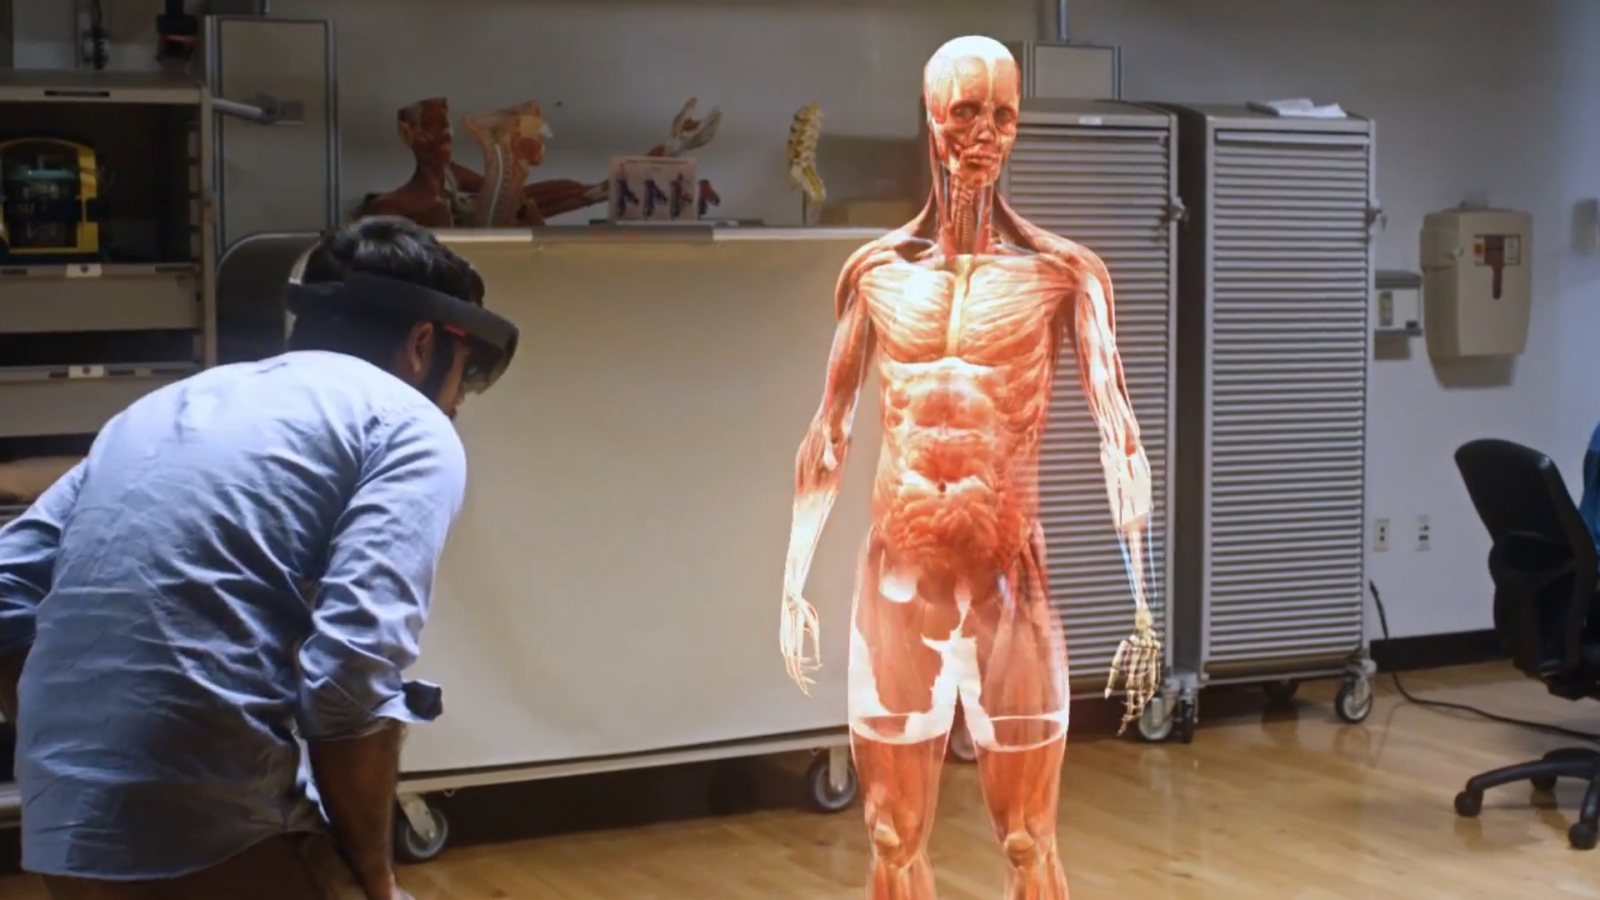 Aboutus >> Virtual Reality Education And Teaching - SourceTech411